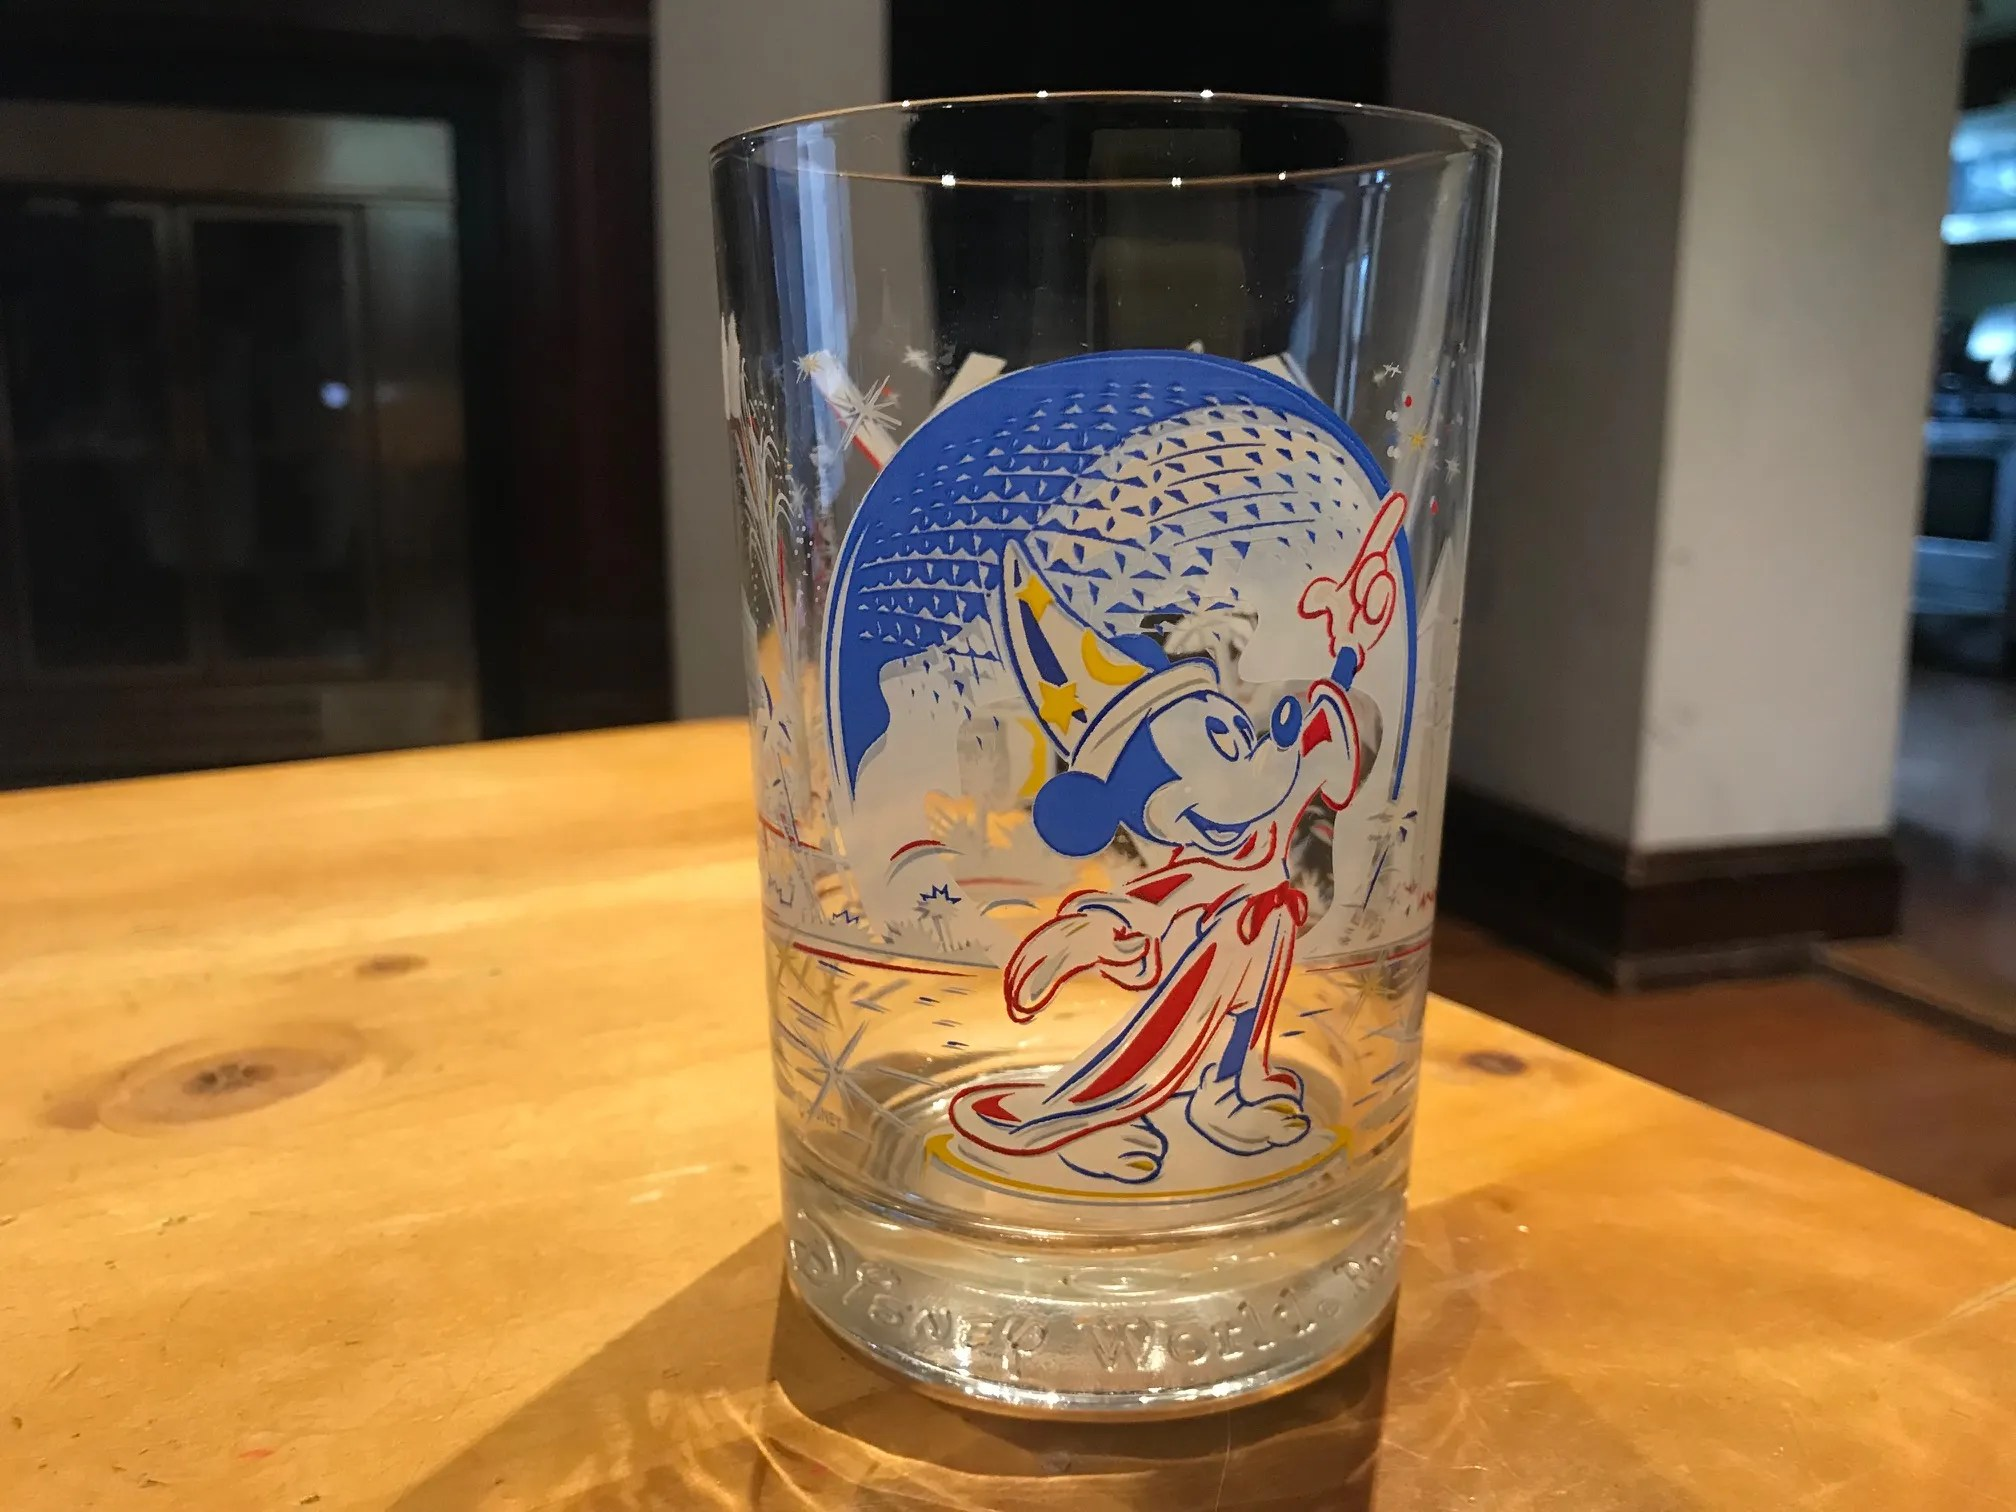 c. 1996 Mickey Mouse Disney World McDonald's 25th Anniversary Drinking Glass: 73,300 ppm Lead + 1,855 ppm Cadmium